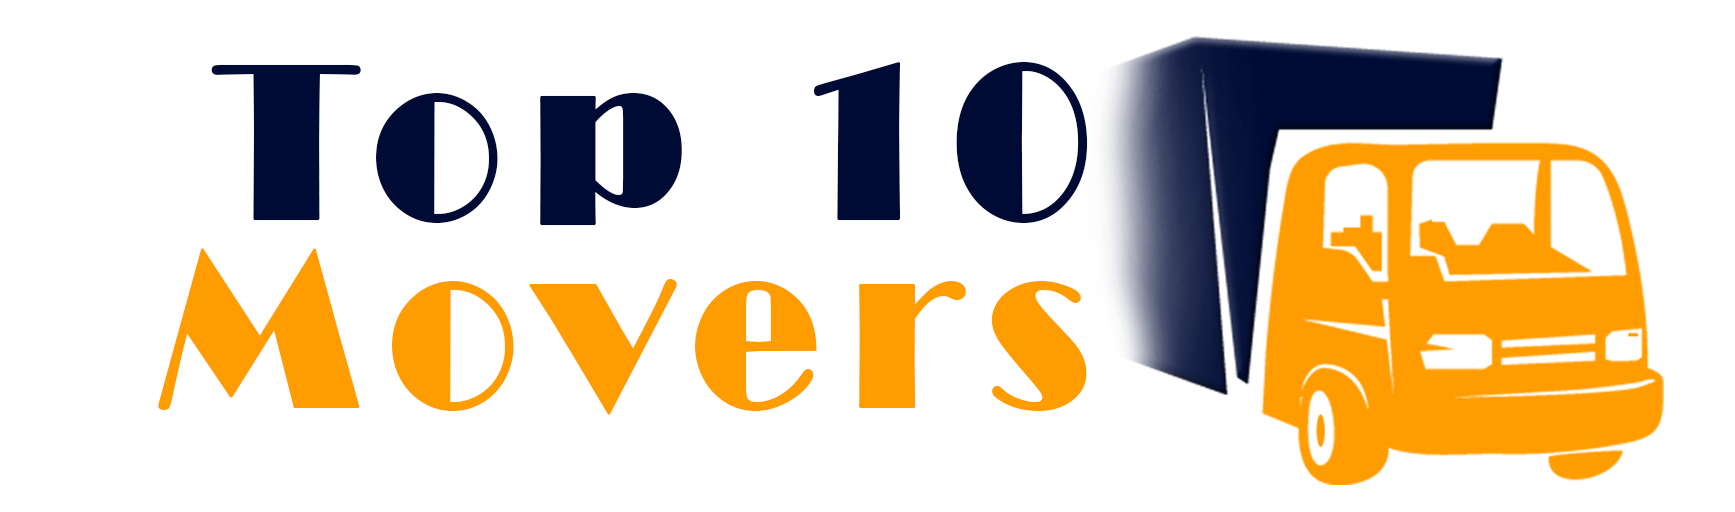 top10movers Logo